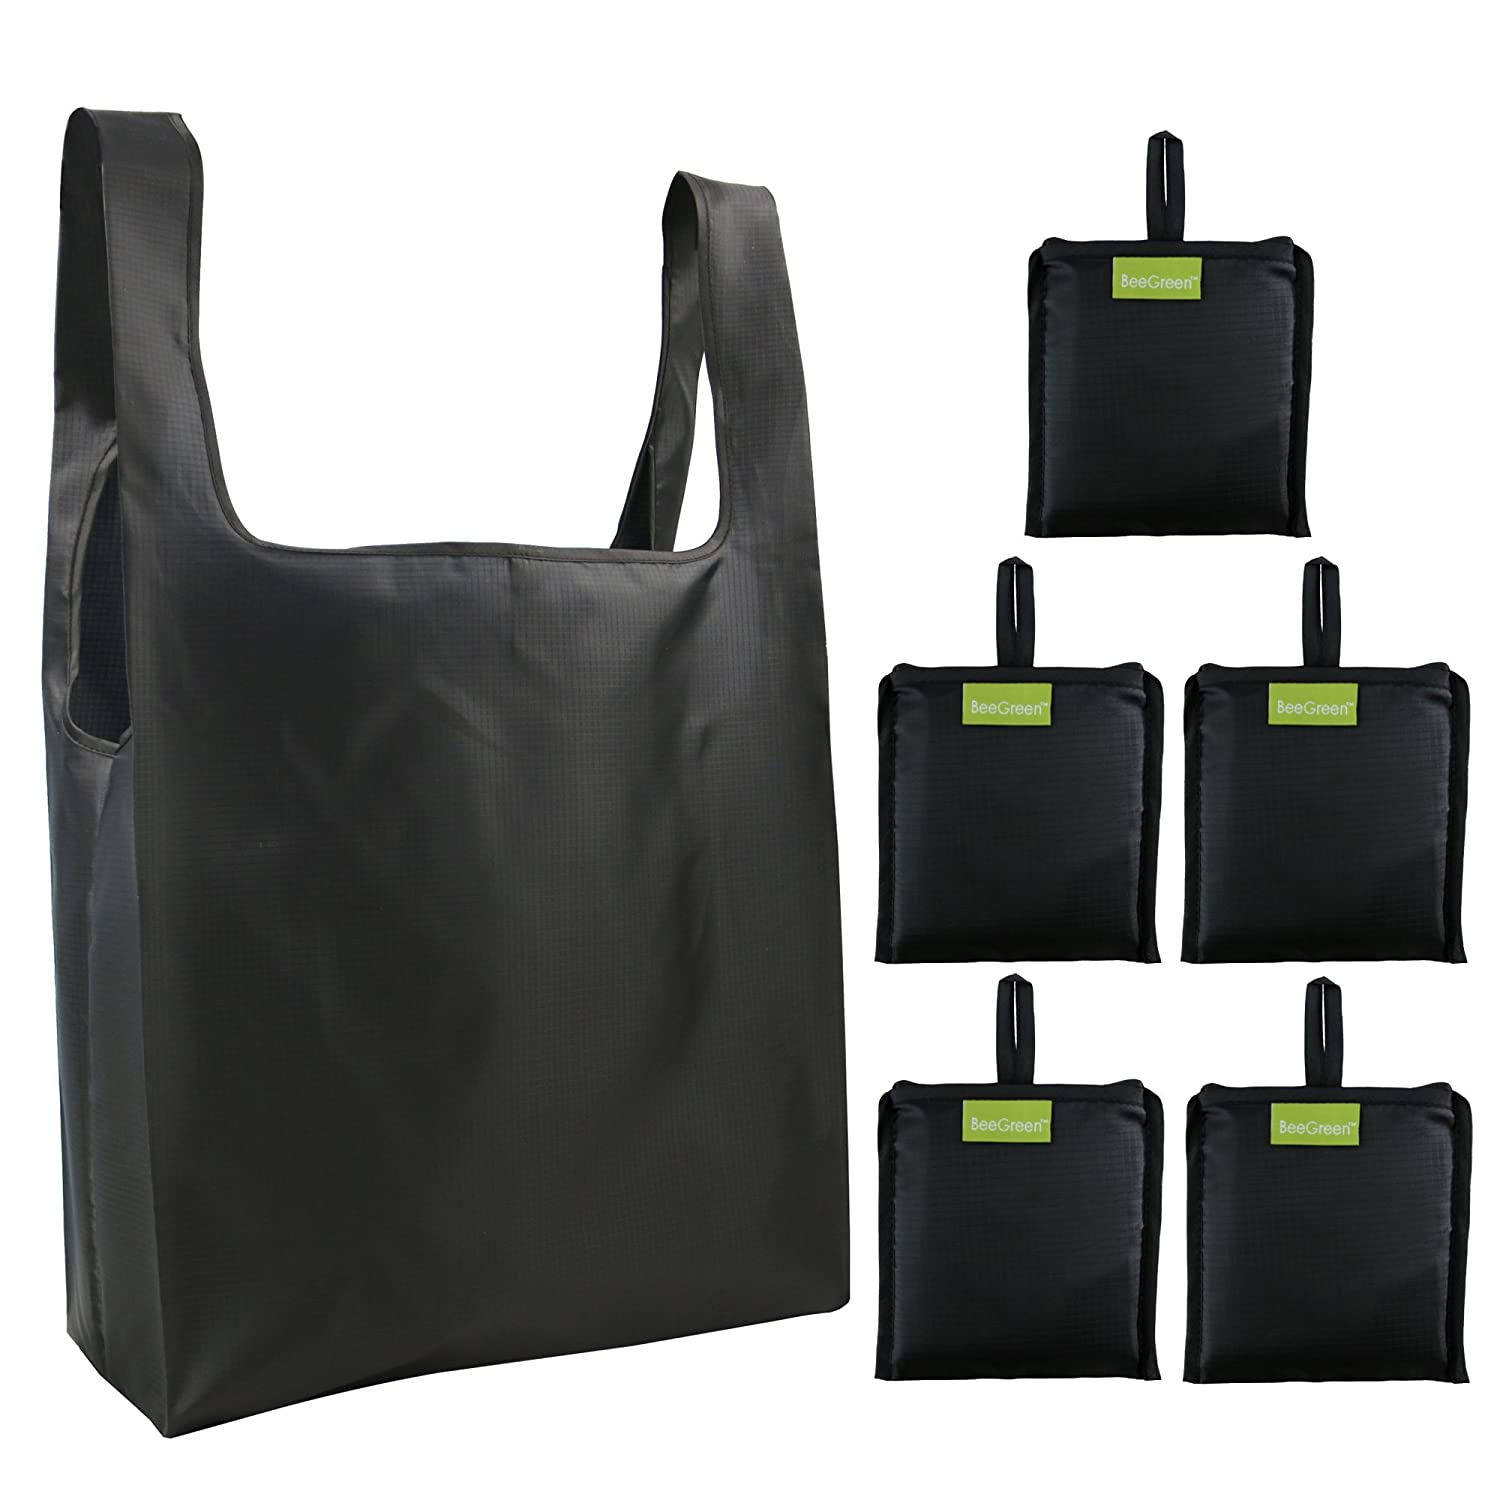 (Black)Reuable Bags Bulk 5 Pack Black, Ripstop Polyester Grocery Bags Foldable into Attached Pouch, Washable, Durable and Lightweight B06Y1TLWKD ブラック ブラック